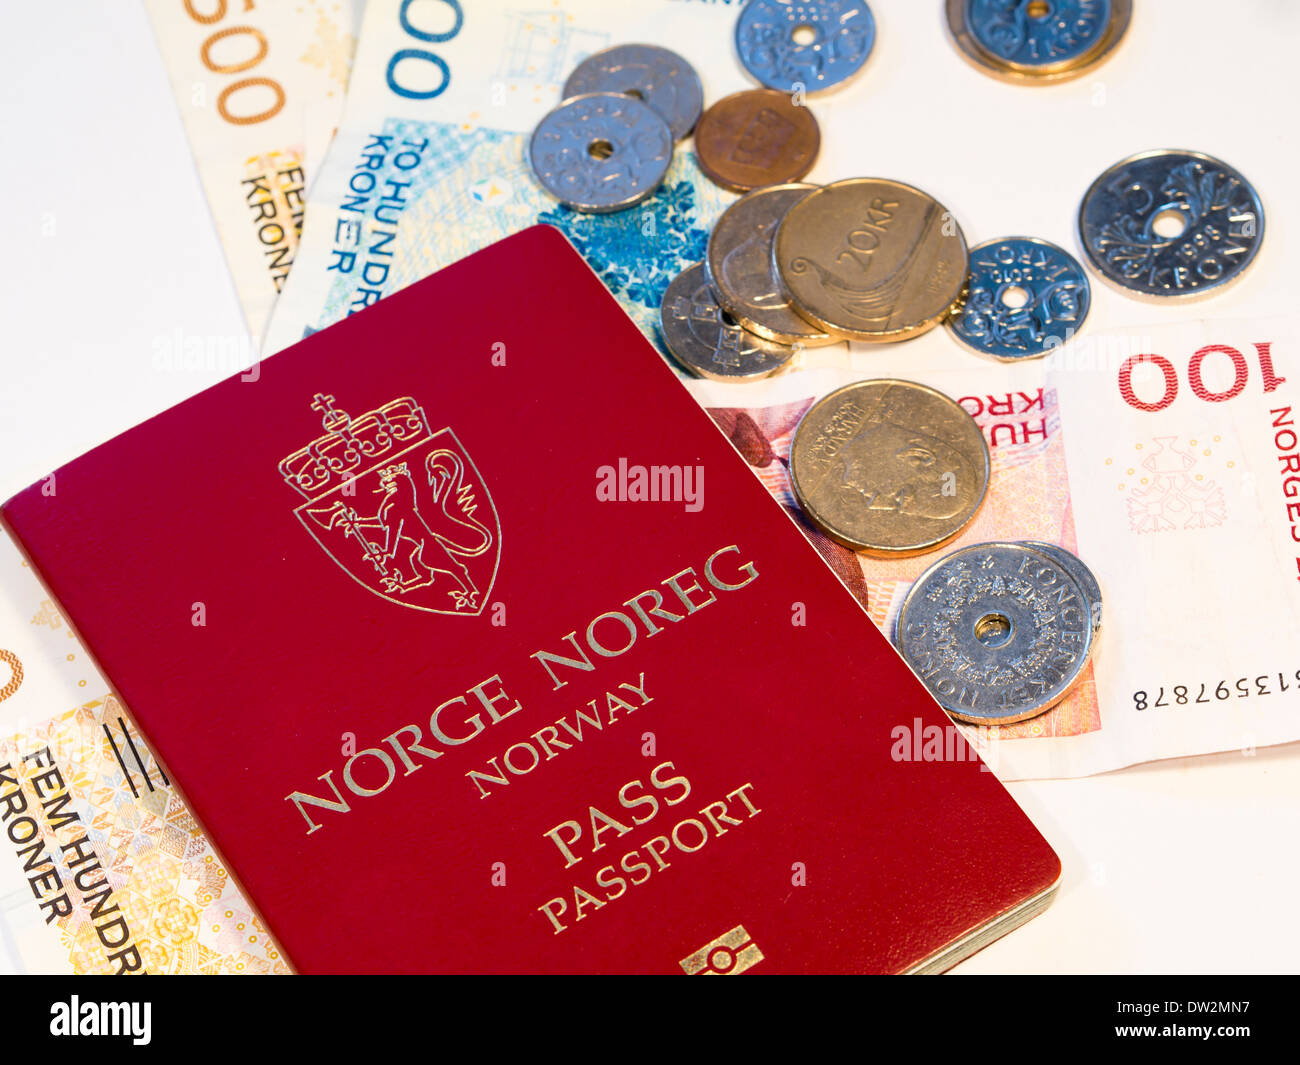 Norwegian nationality, passport and currency - Stock Image